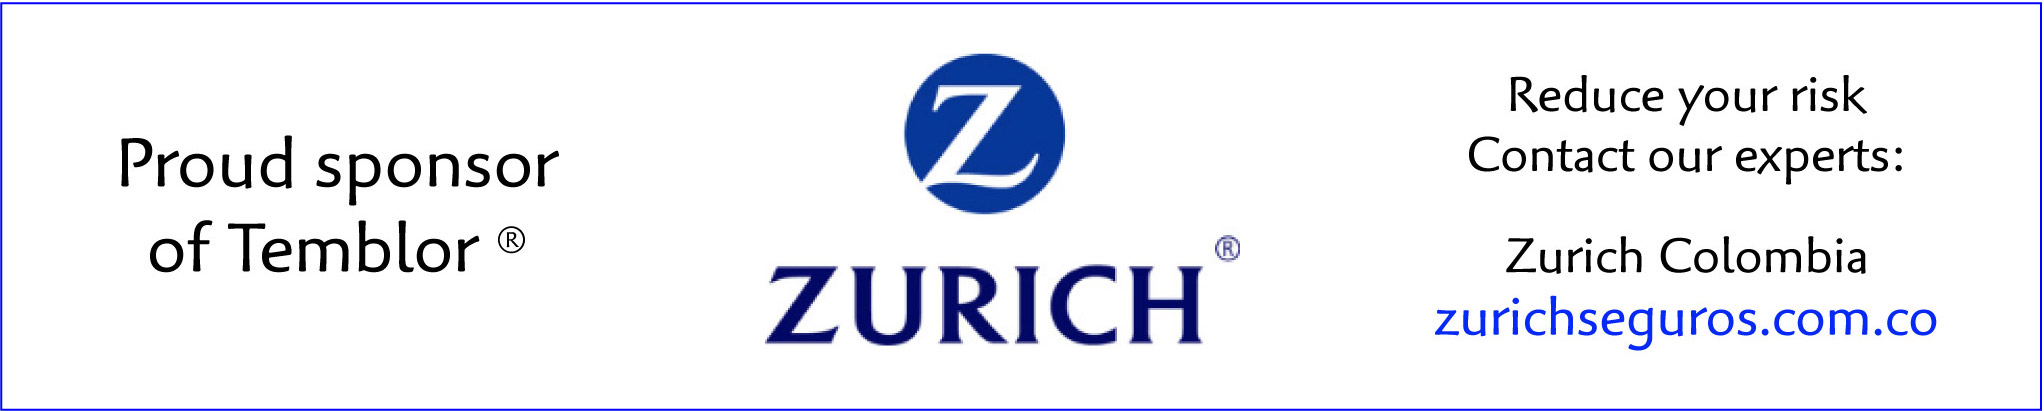 Zurich Insurance Colombia